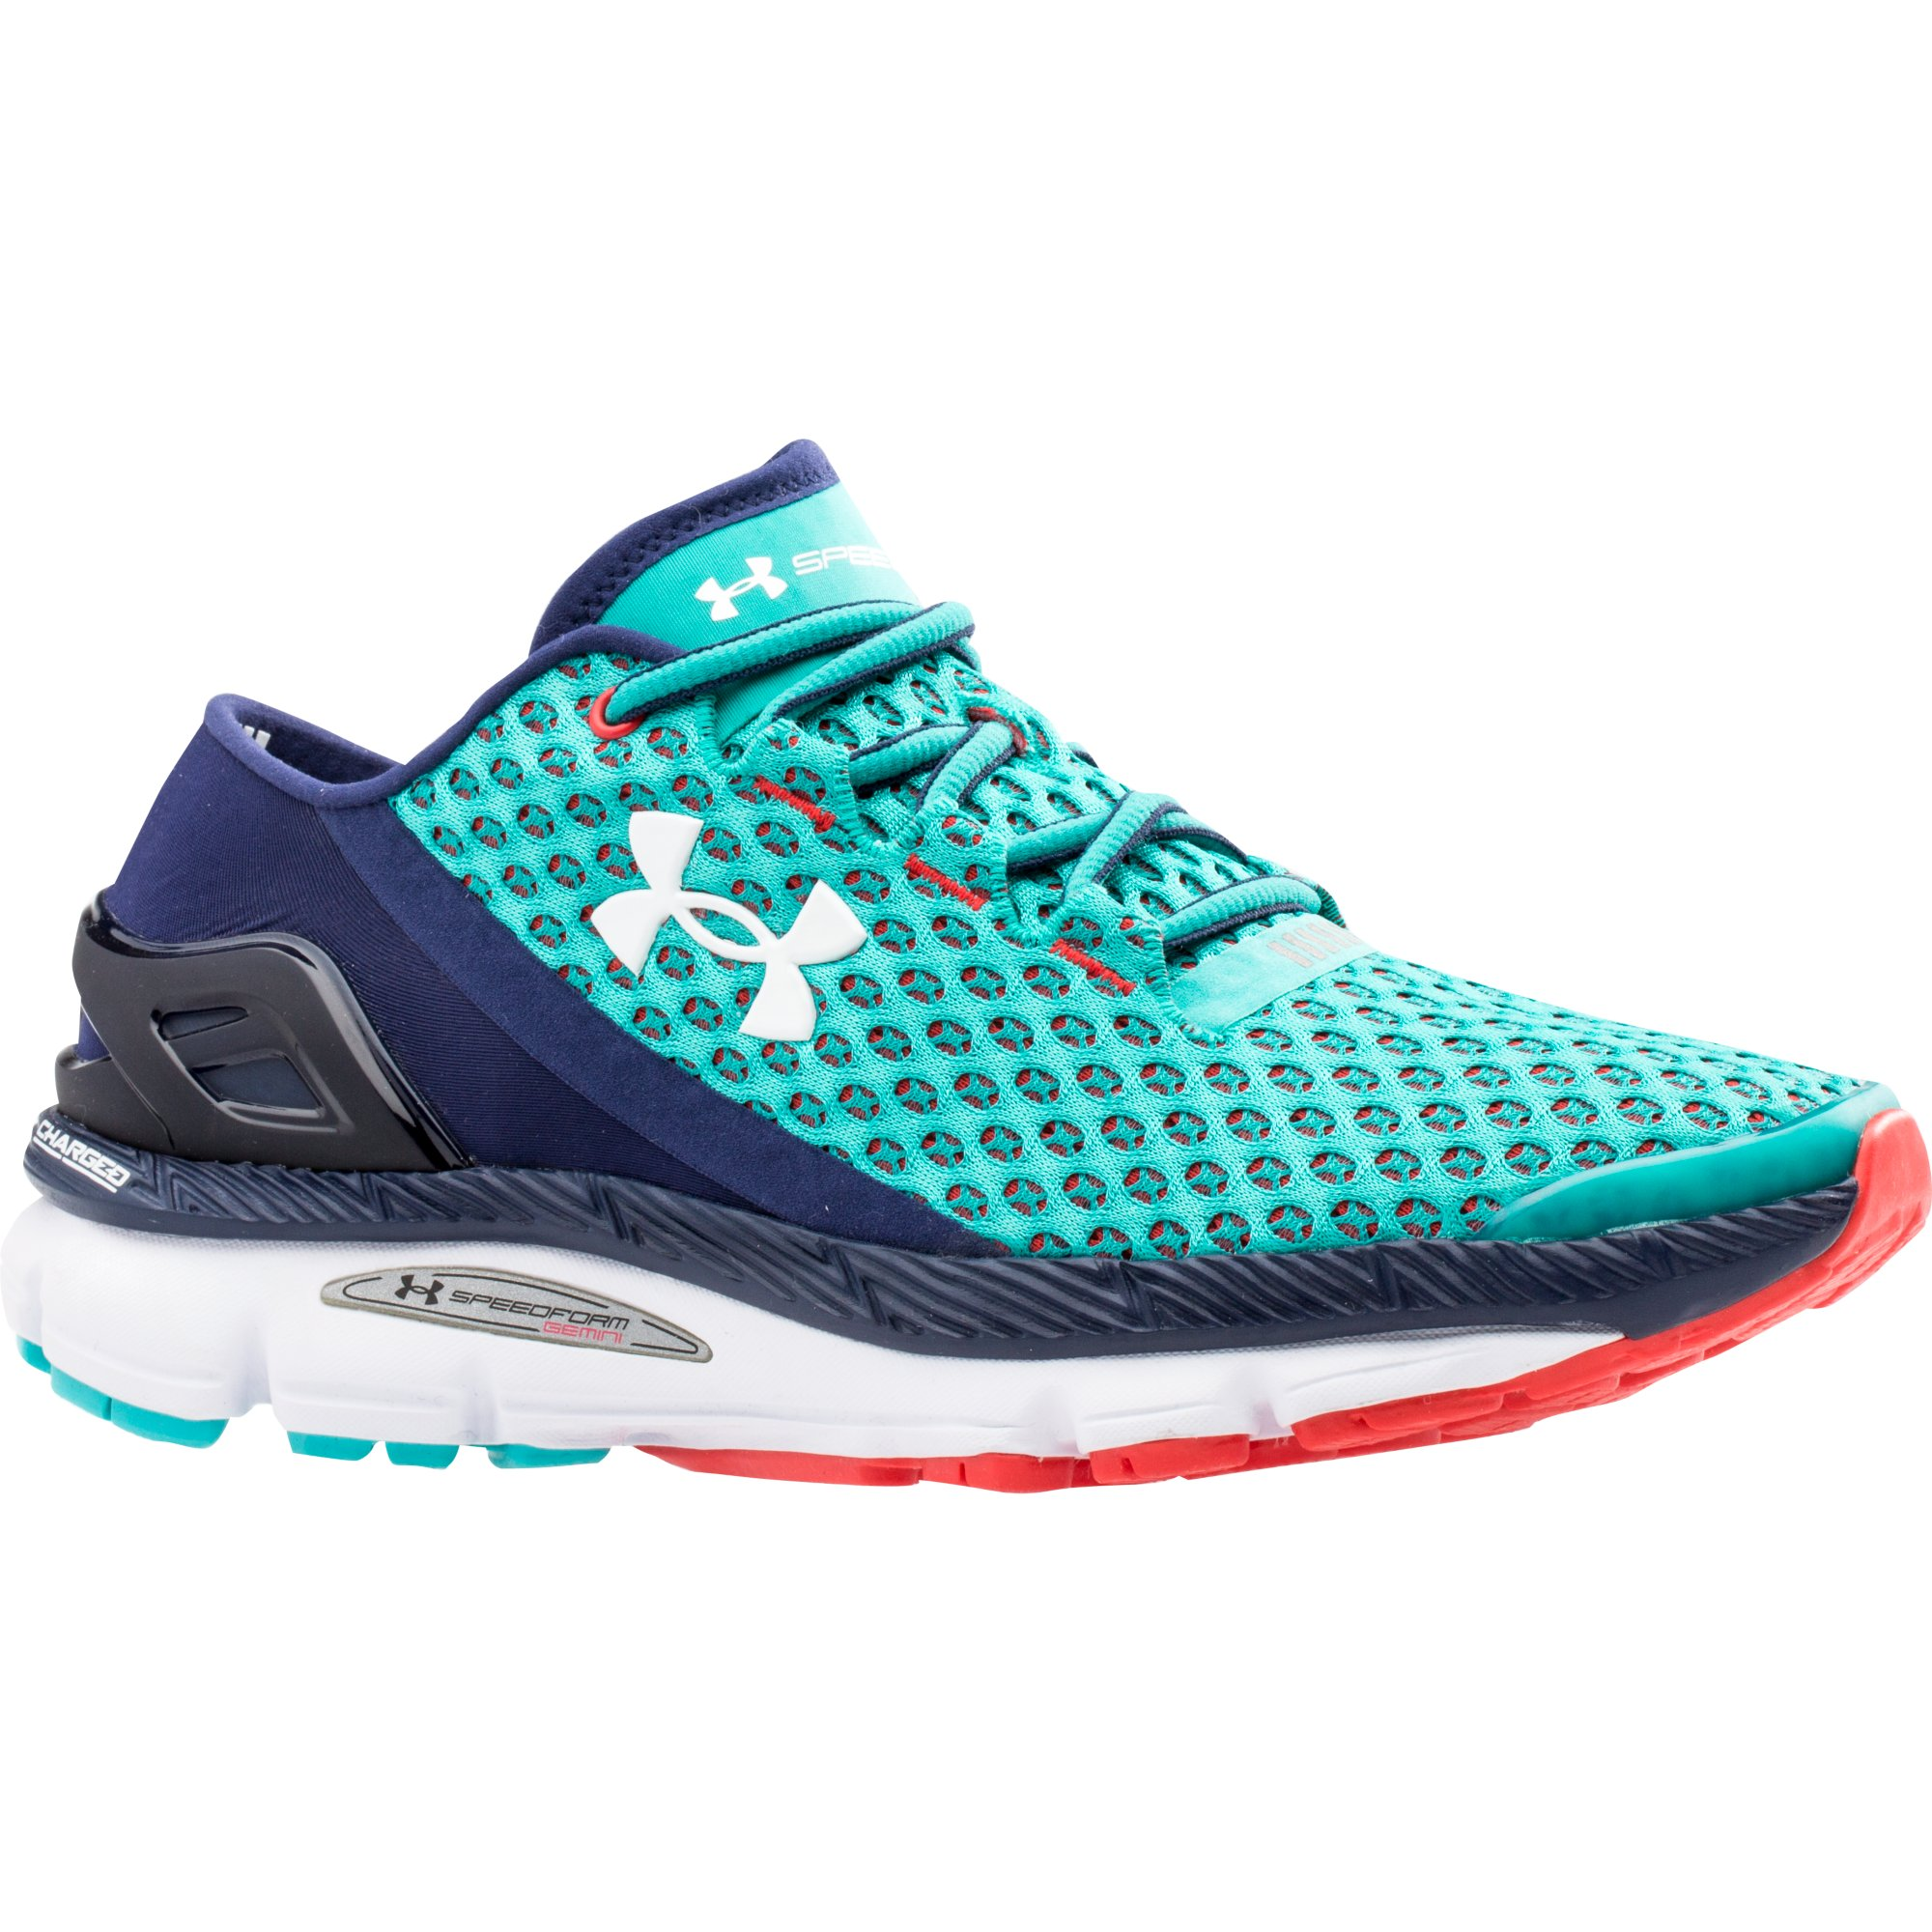 wiggle.com | Under Armour Women's Speedform Gemini Blue Shoes ...